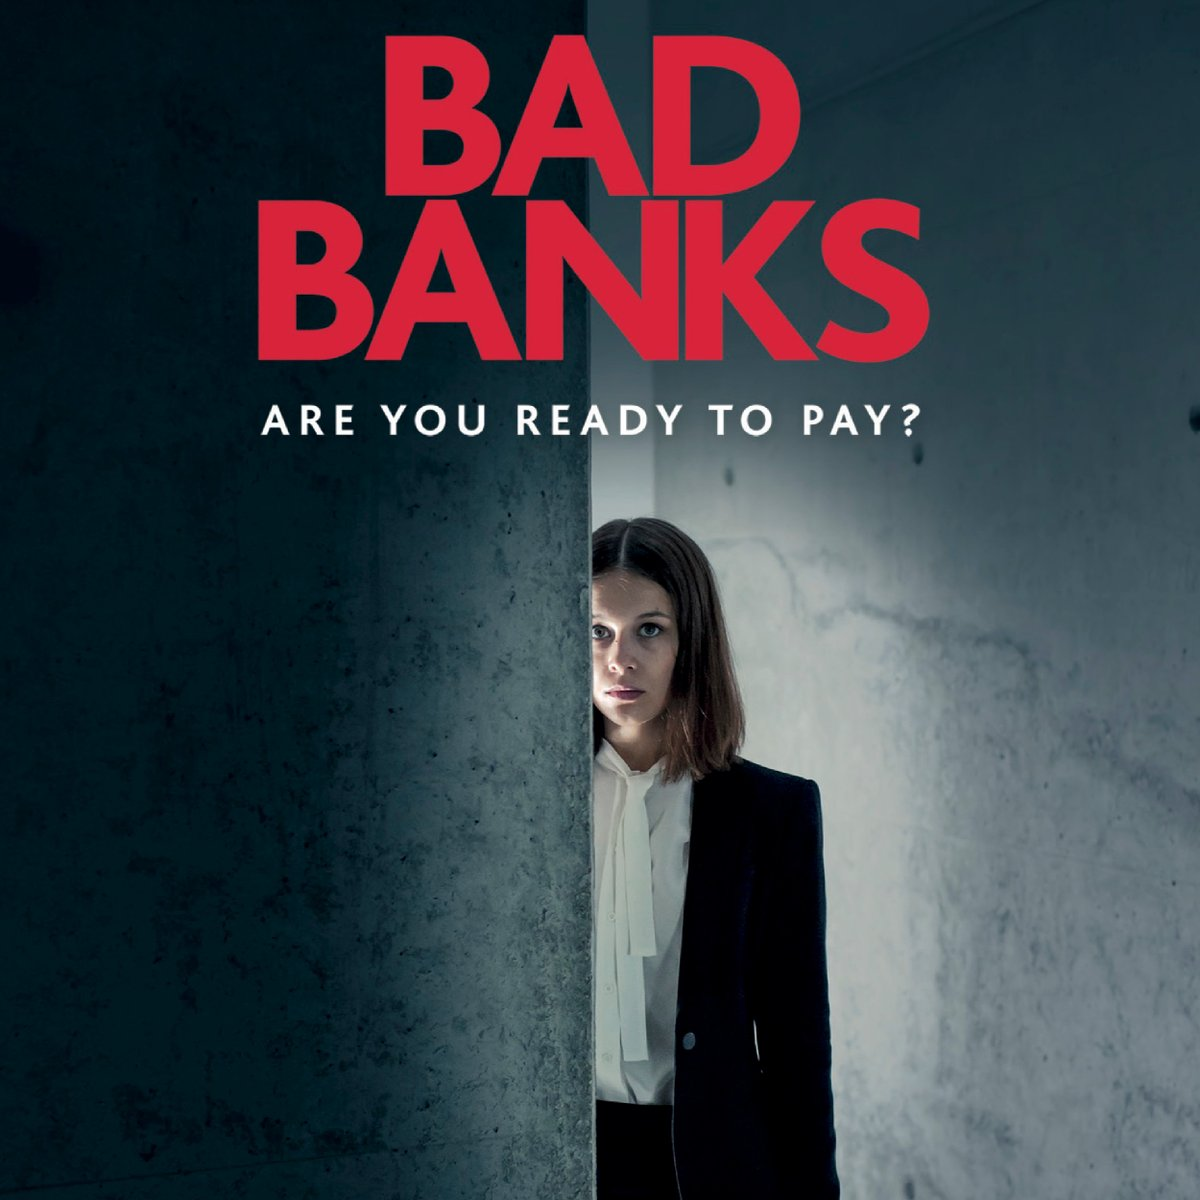 Breaker Binge Sale #2: @TheCrownNetflix director @schwochberg shot spell-binding season 1 ($5.99) of @KinoLorber's BAD BANKS. Watch nasty bankers outsmart each other while Jana (#PaulaBeer) tries to hang on to her integrity: http://bit.ly/BBBadBanks  #BadBanks pic.twitter.com/jJpV3R6hk3